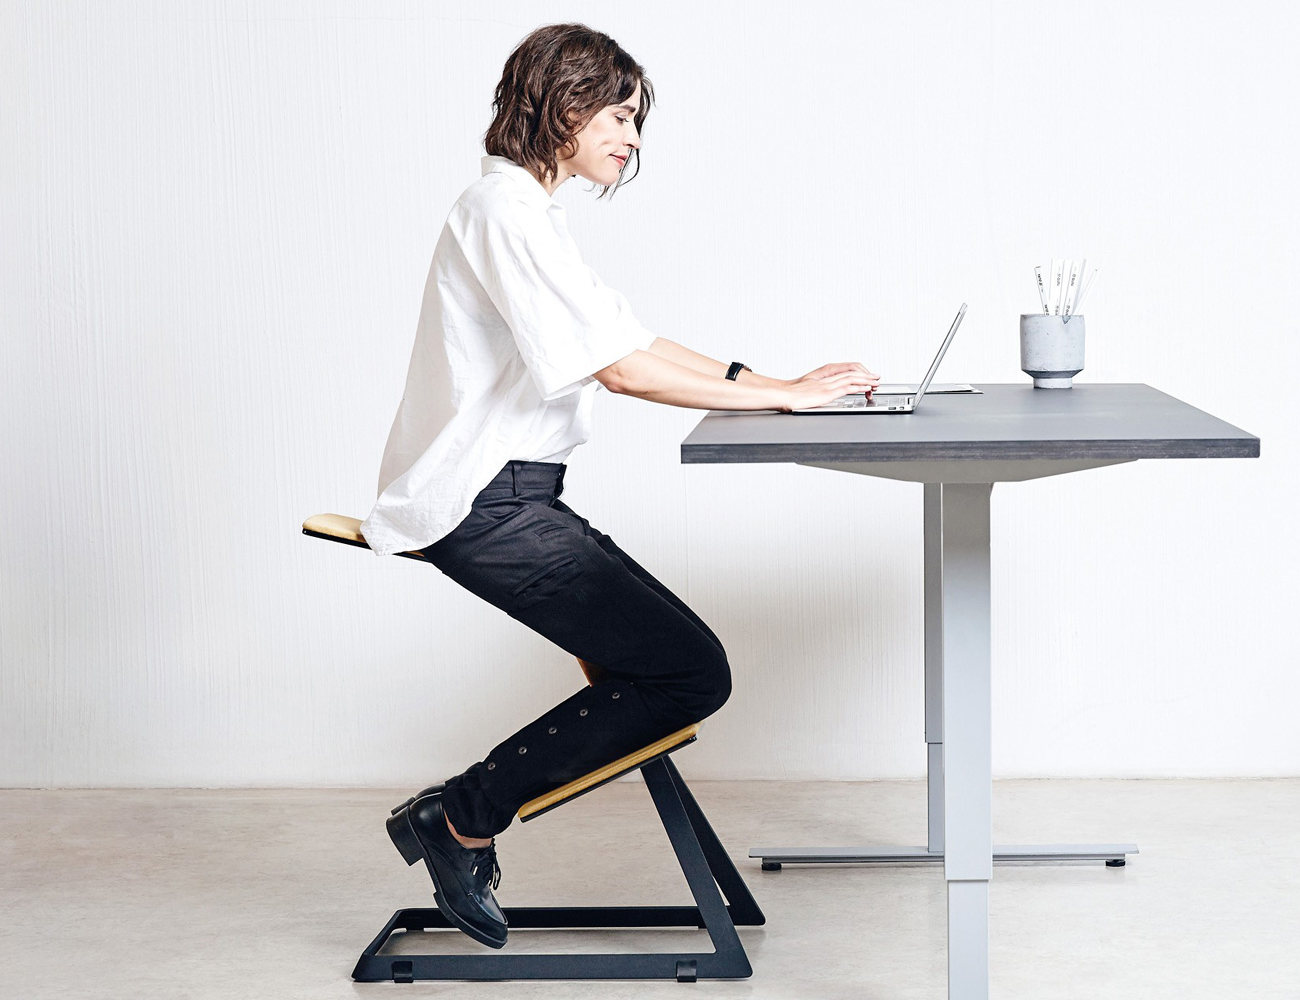 ergonomic chair keyboard position how to make chairs w  the truly desk gadget flow